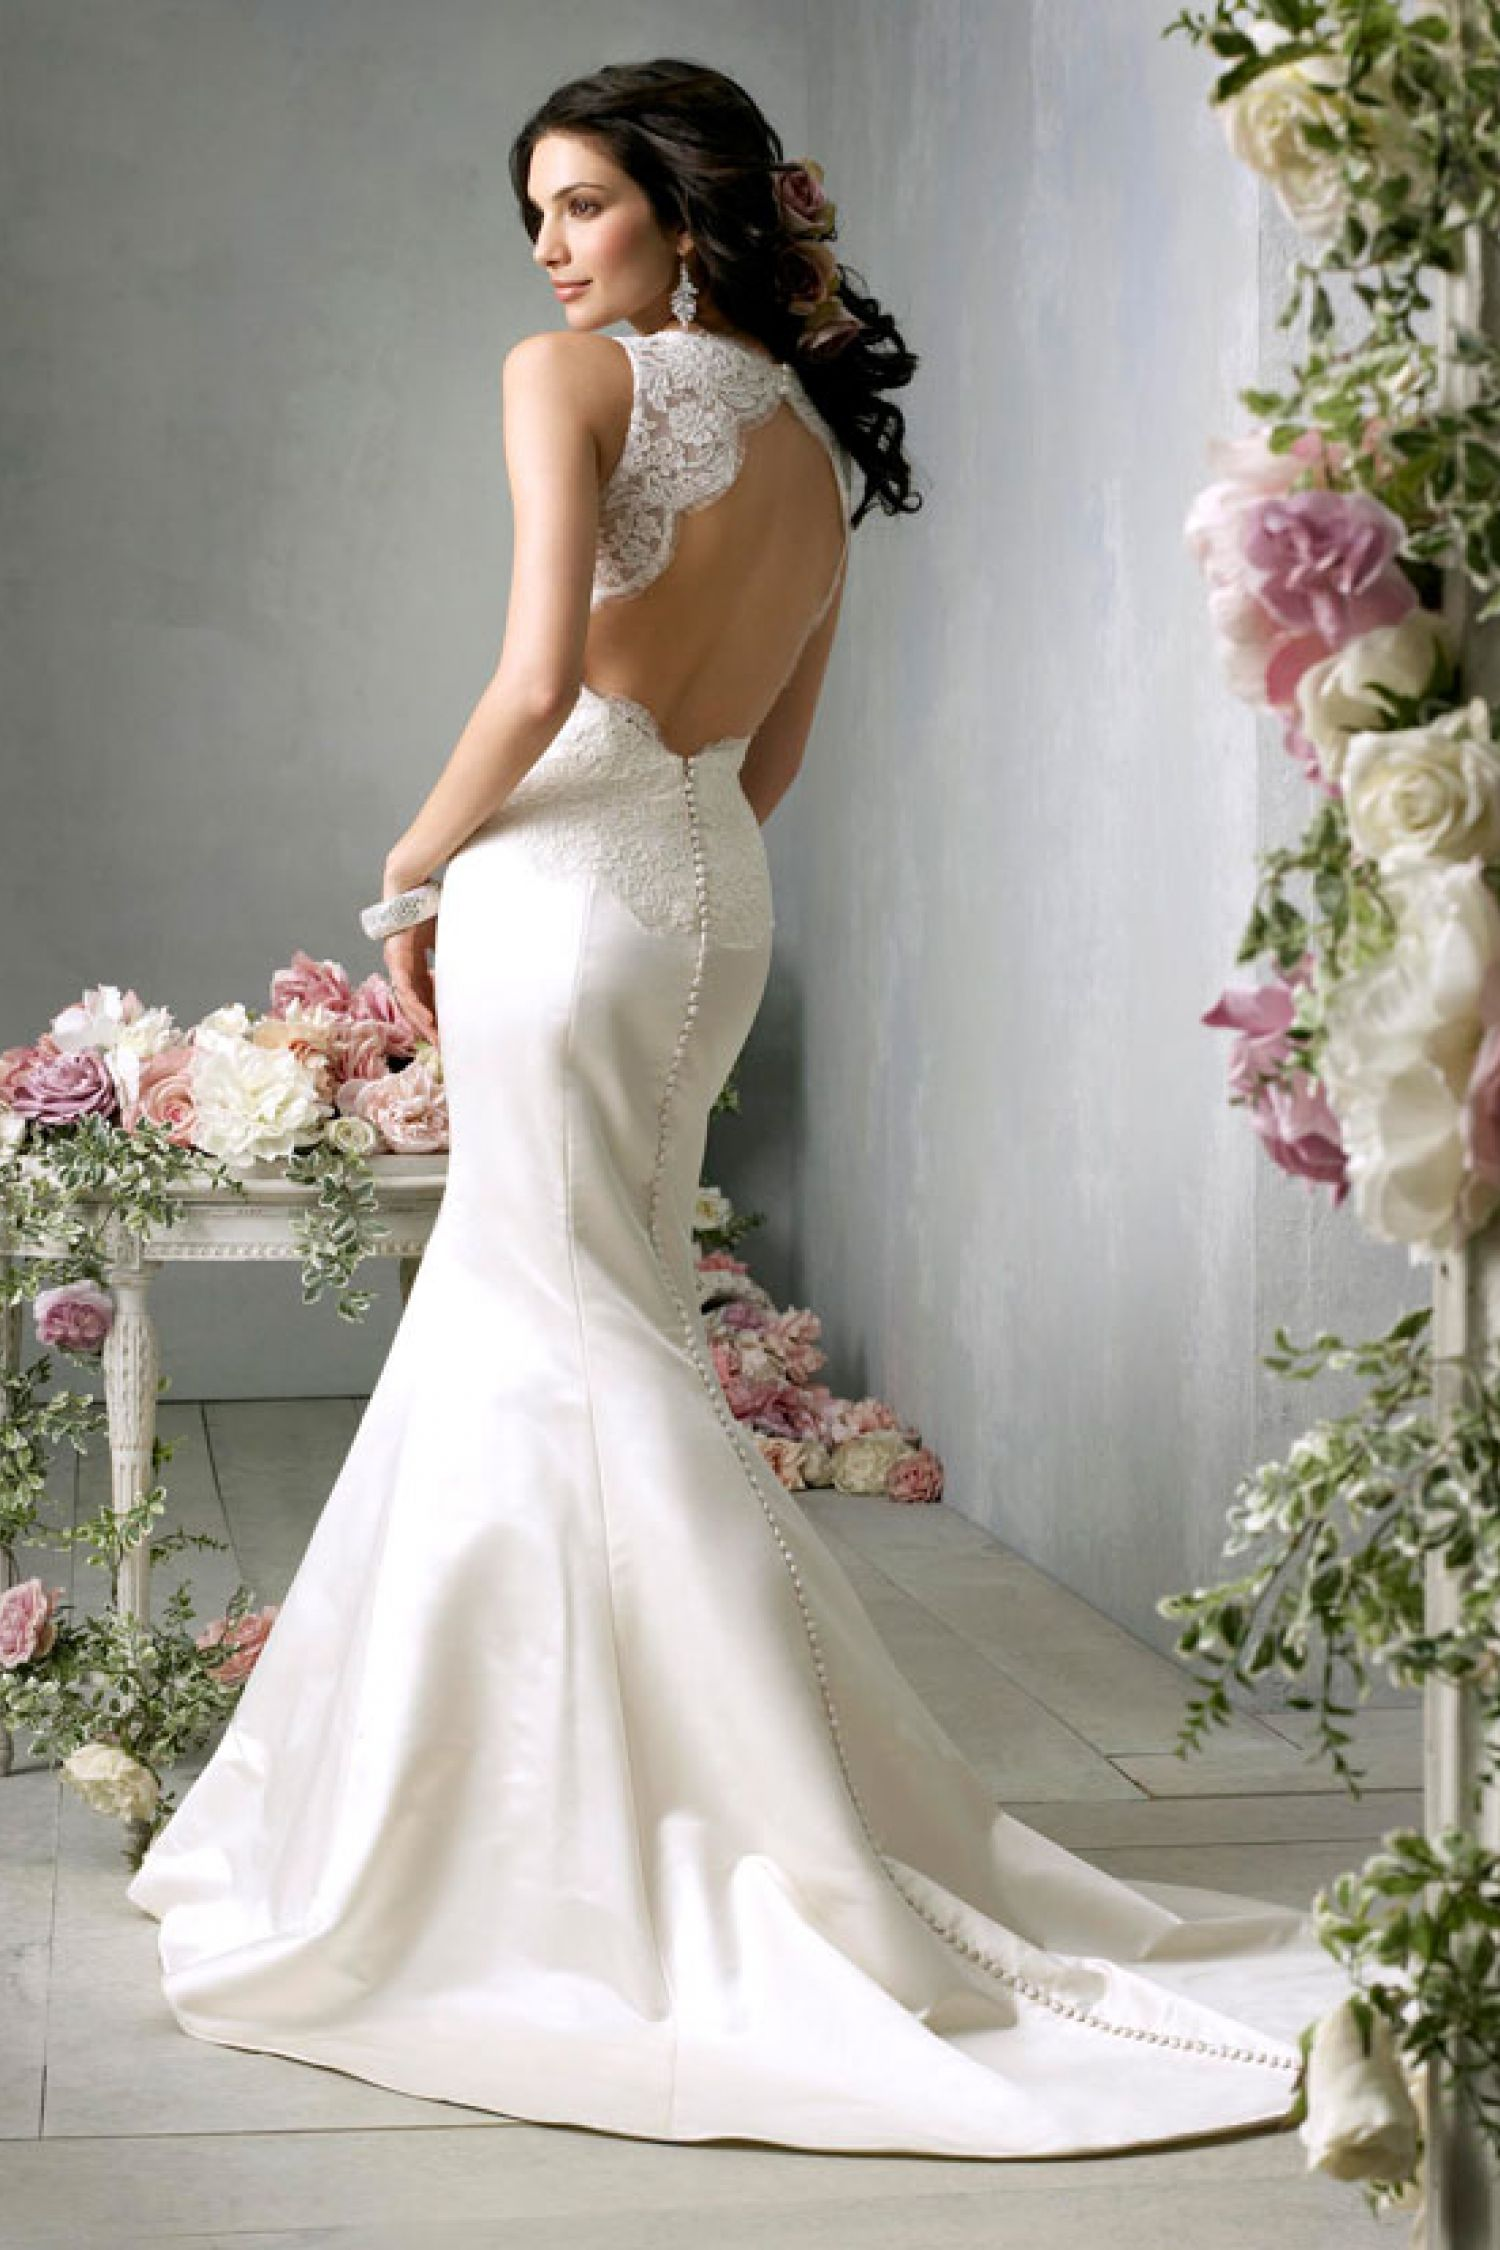 Amazing Mermaid Wedding Dresses 2013 (28)